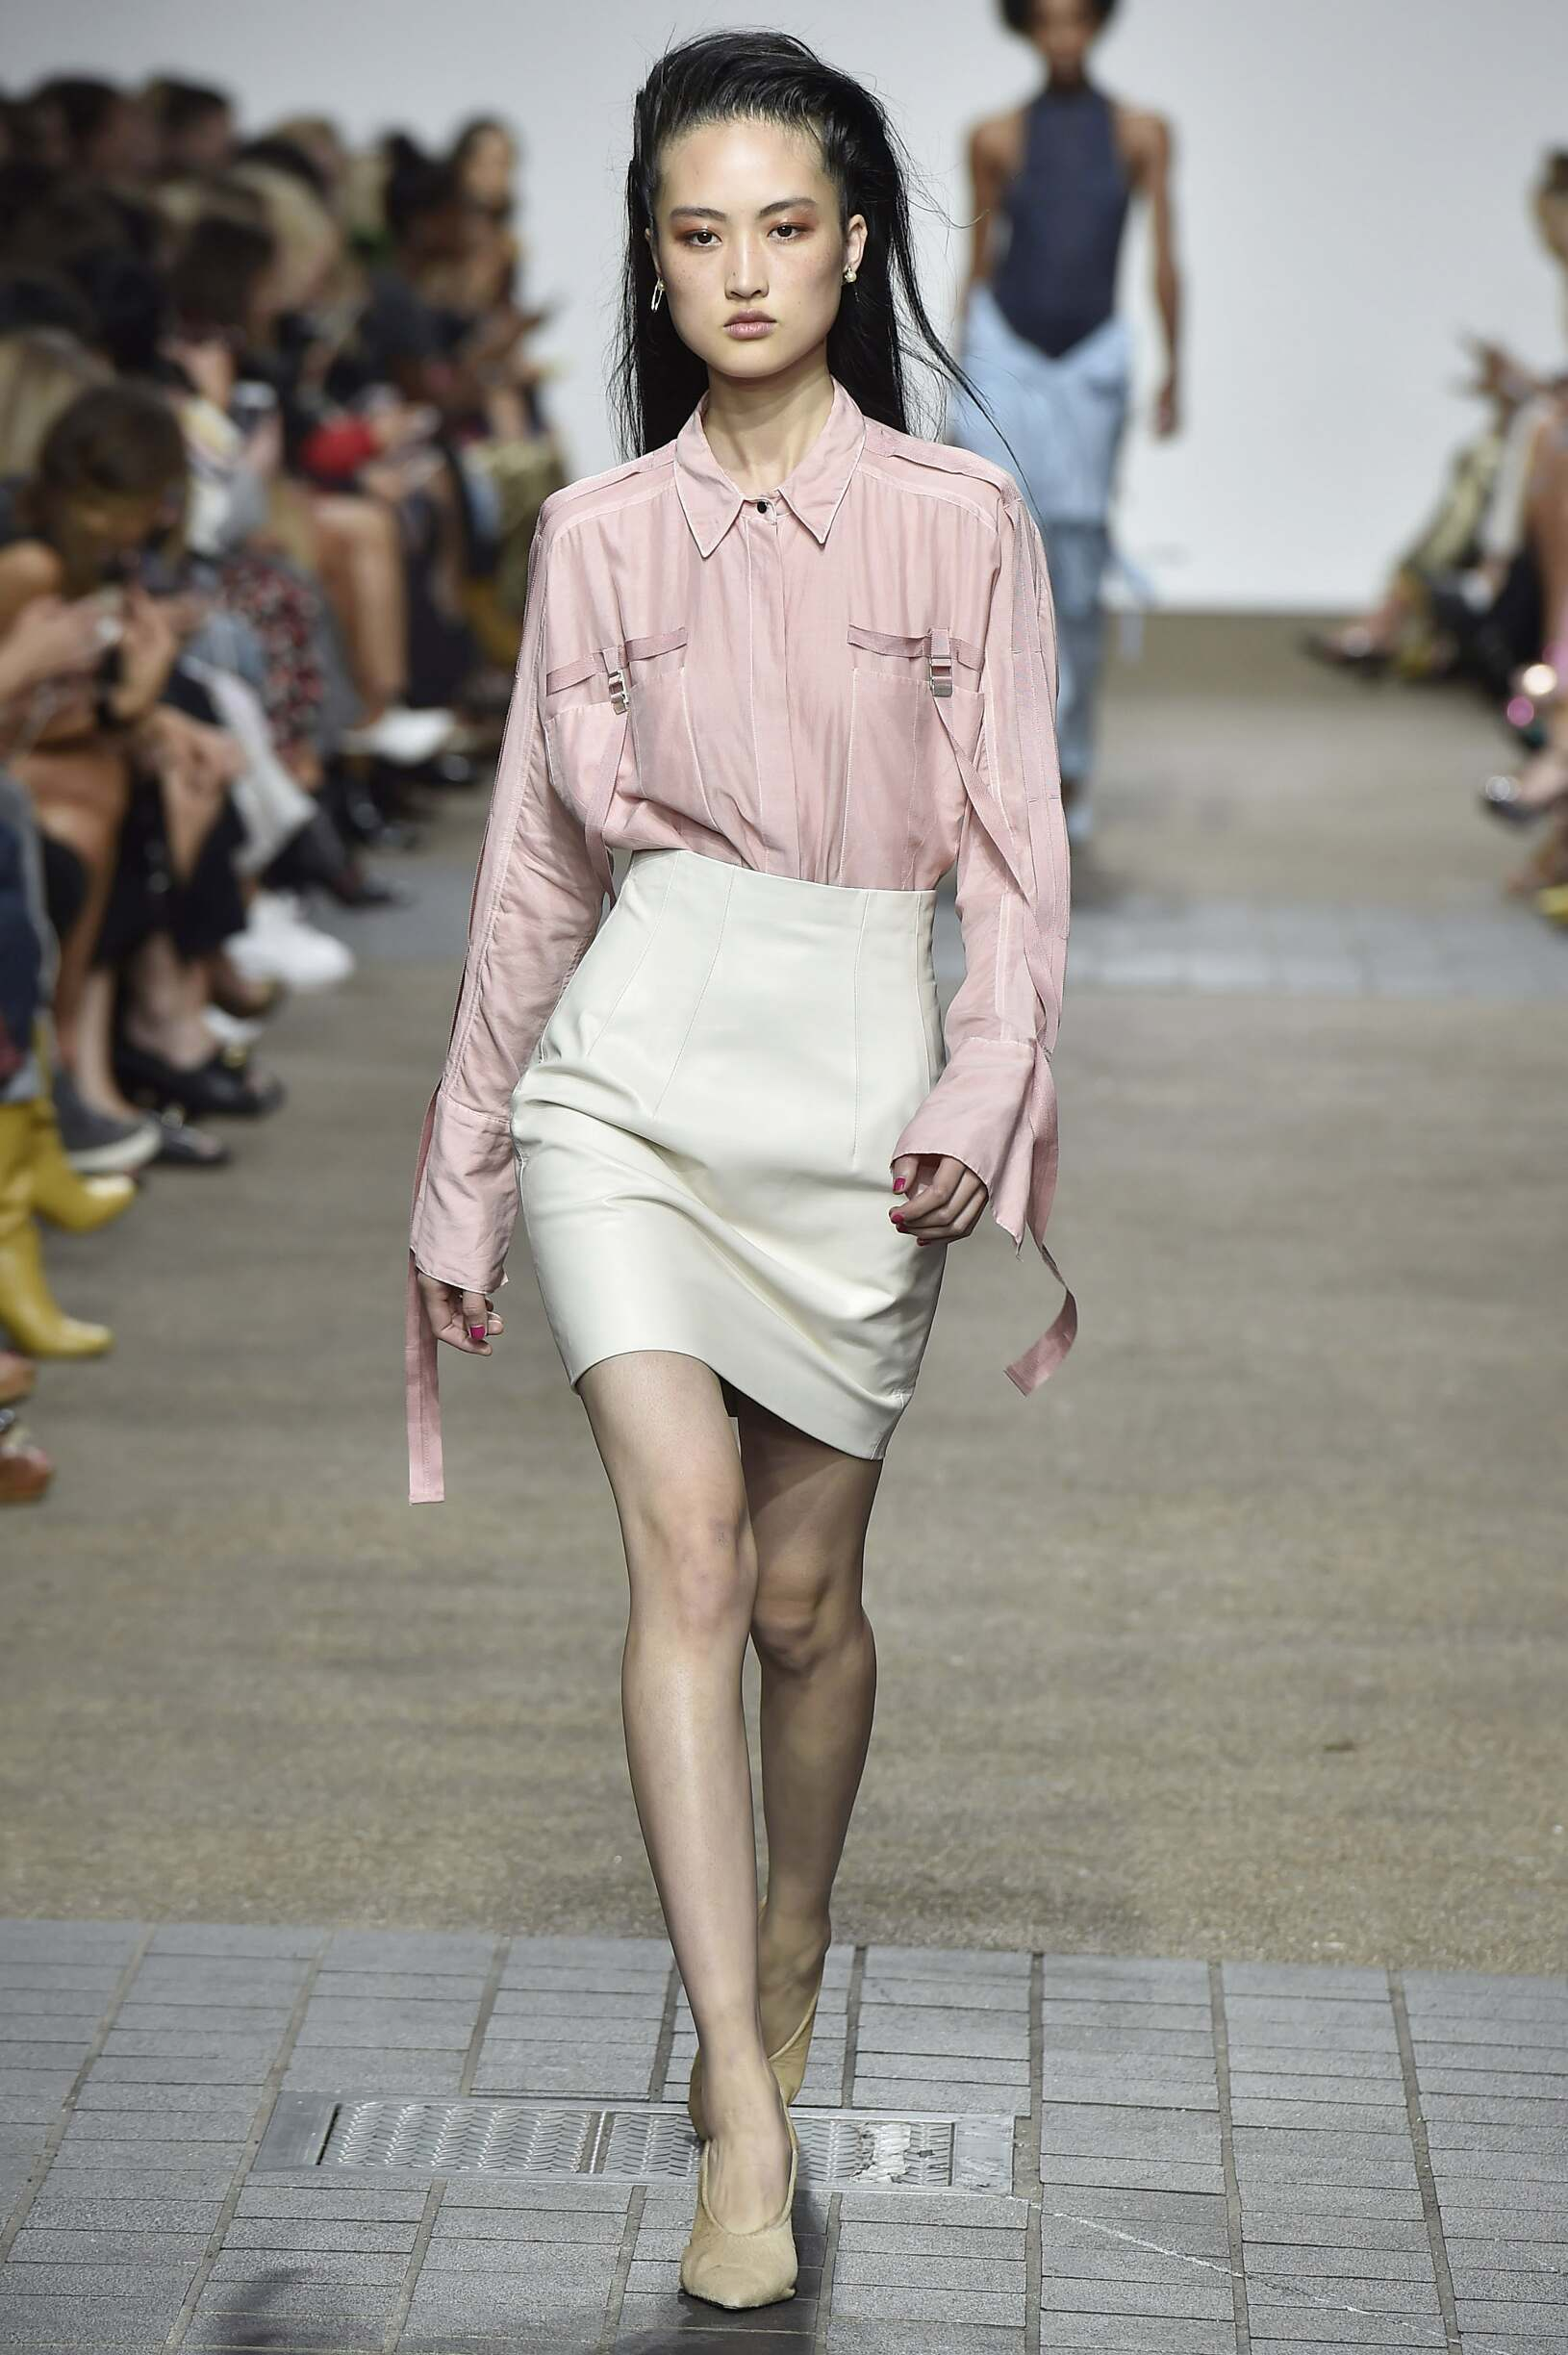 Topshop Unique London Fashion Week Womenswear 2016